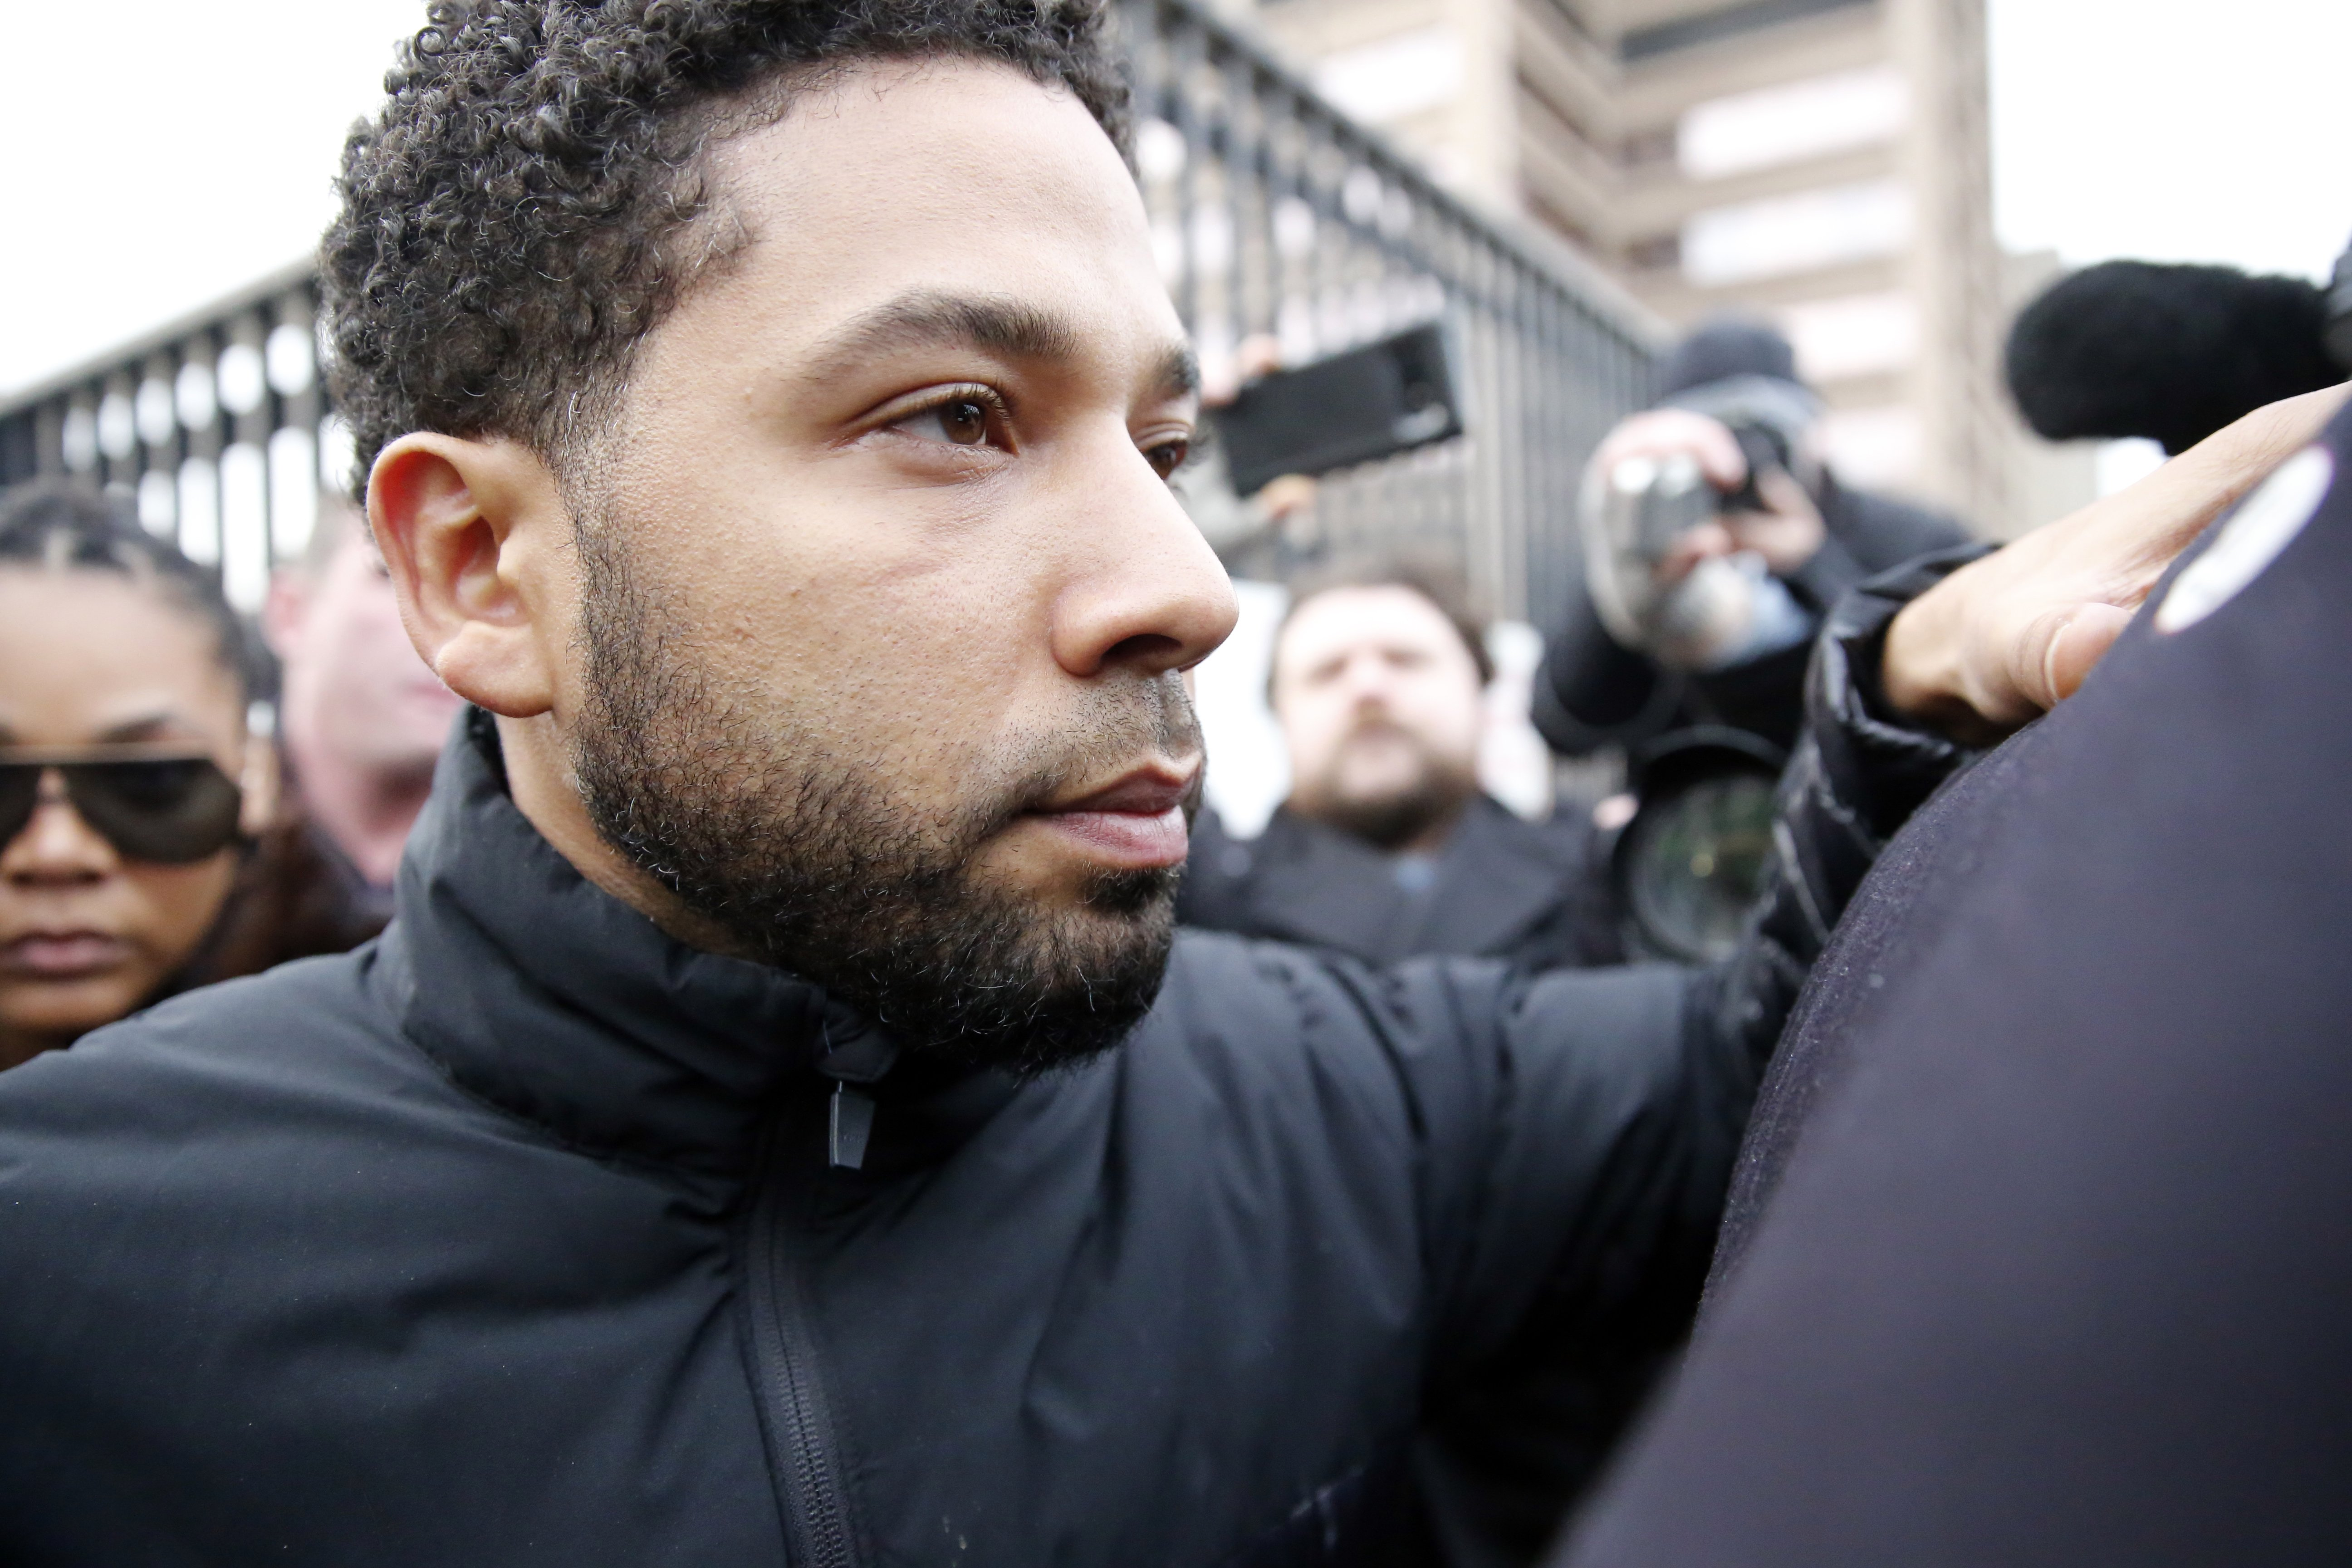 Jussie Smollett leaves Cook County jail after posting bond on February 21, 2019 in Chicago. | Photo: GettyImages